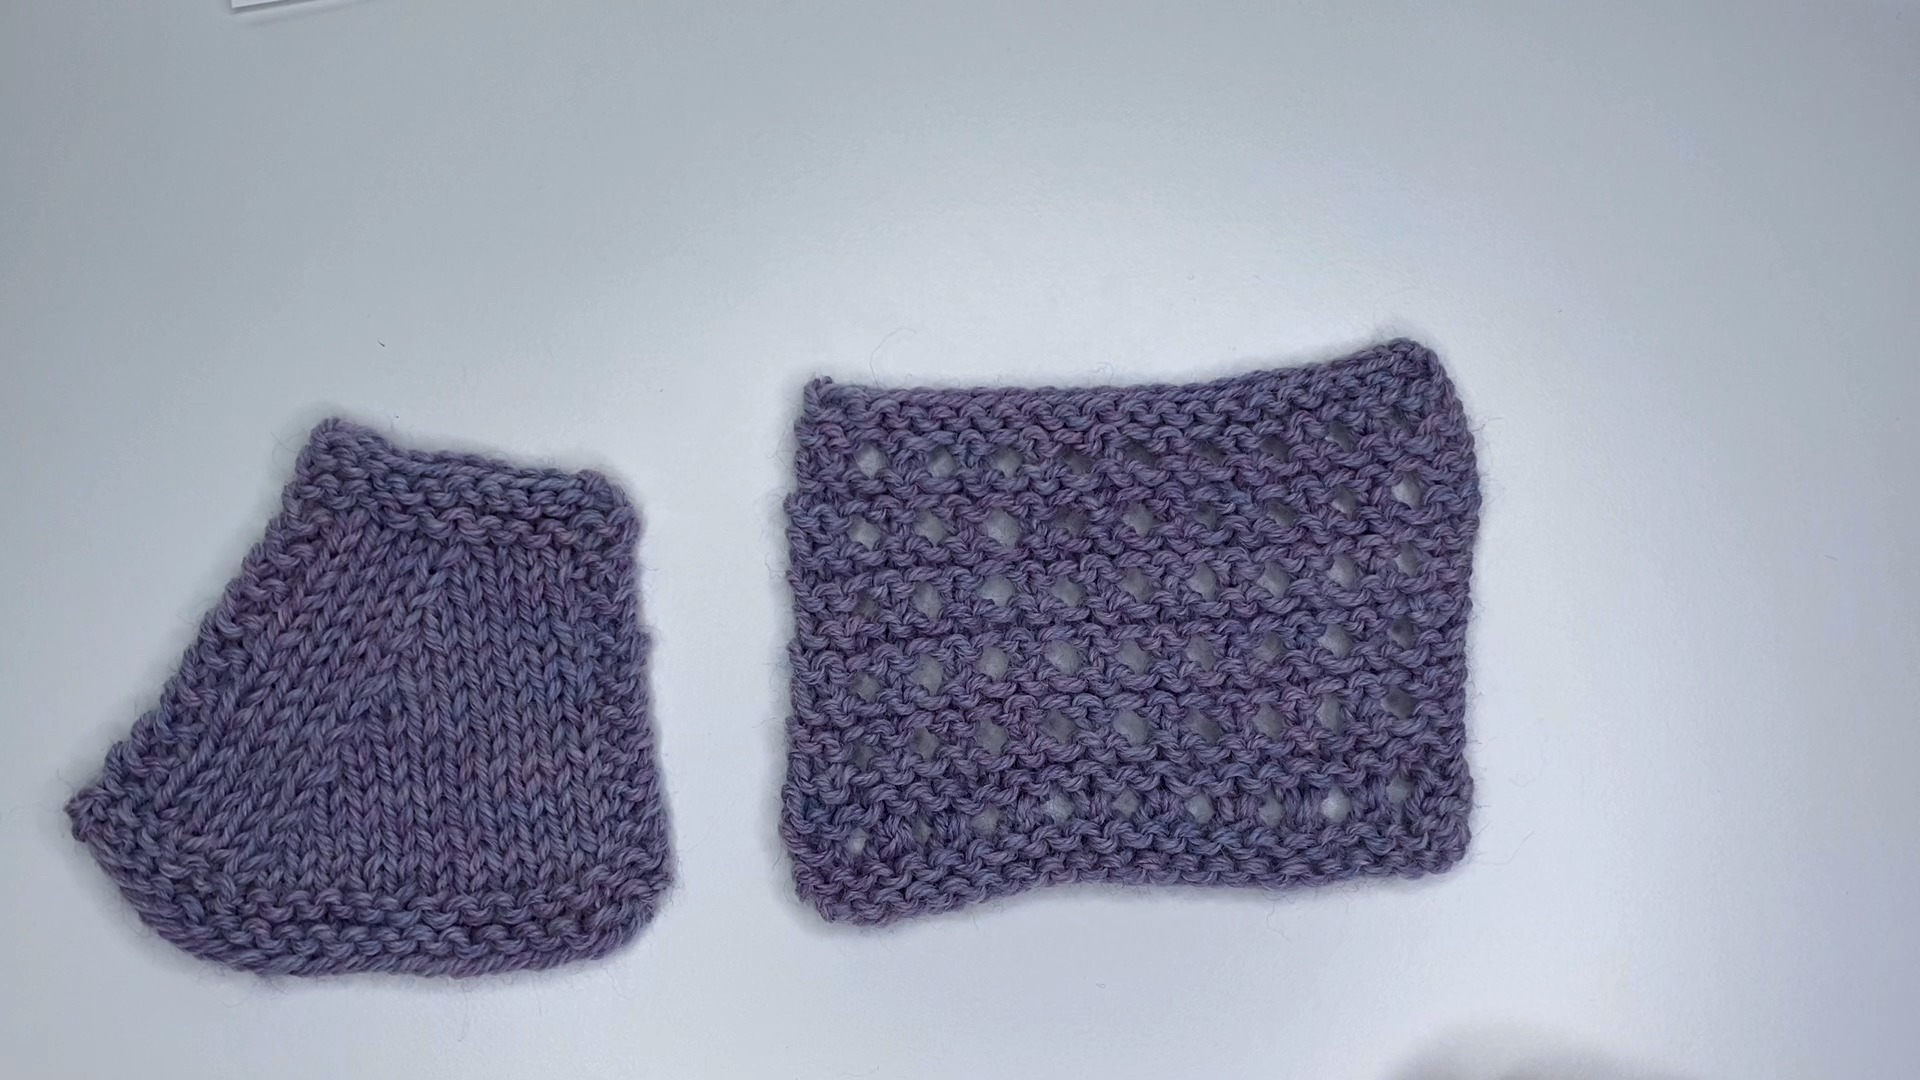 14-Day Learn to Knit Series: Day 9